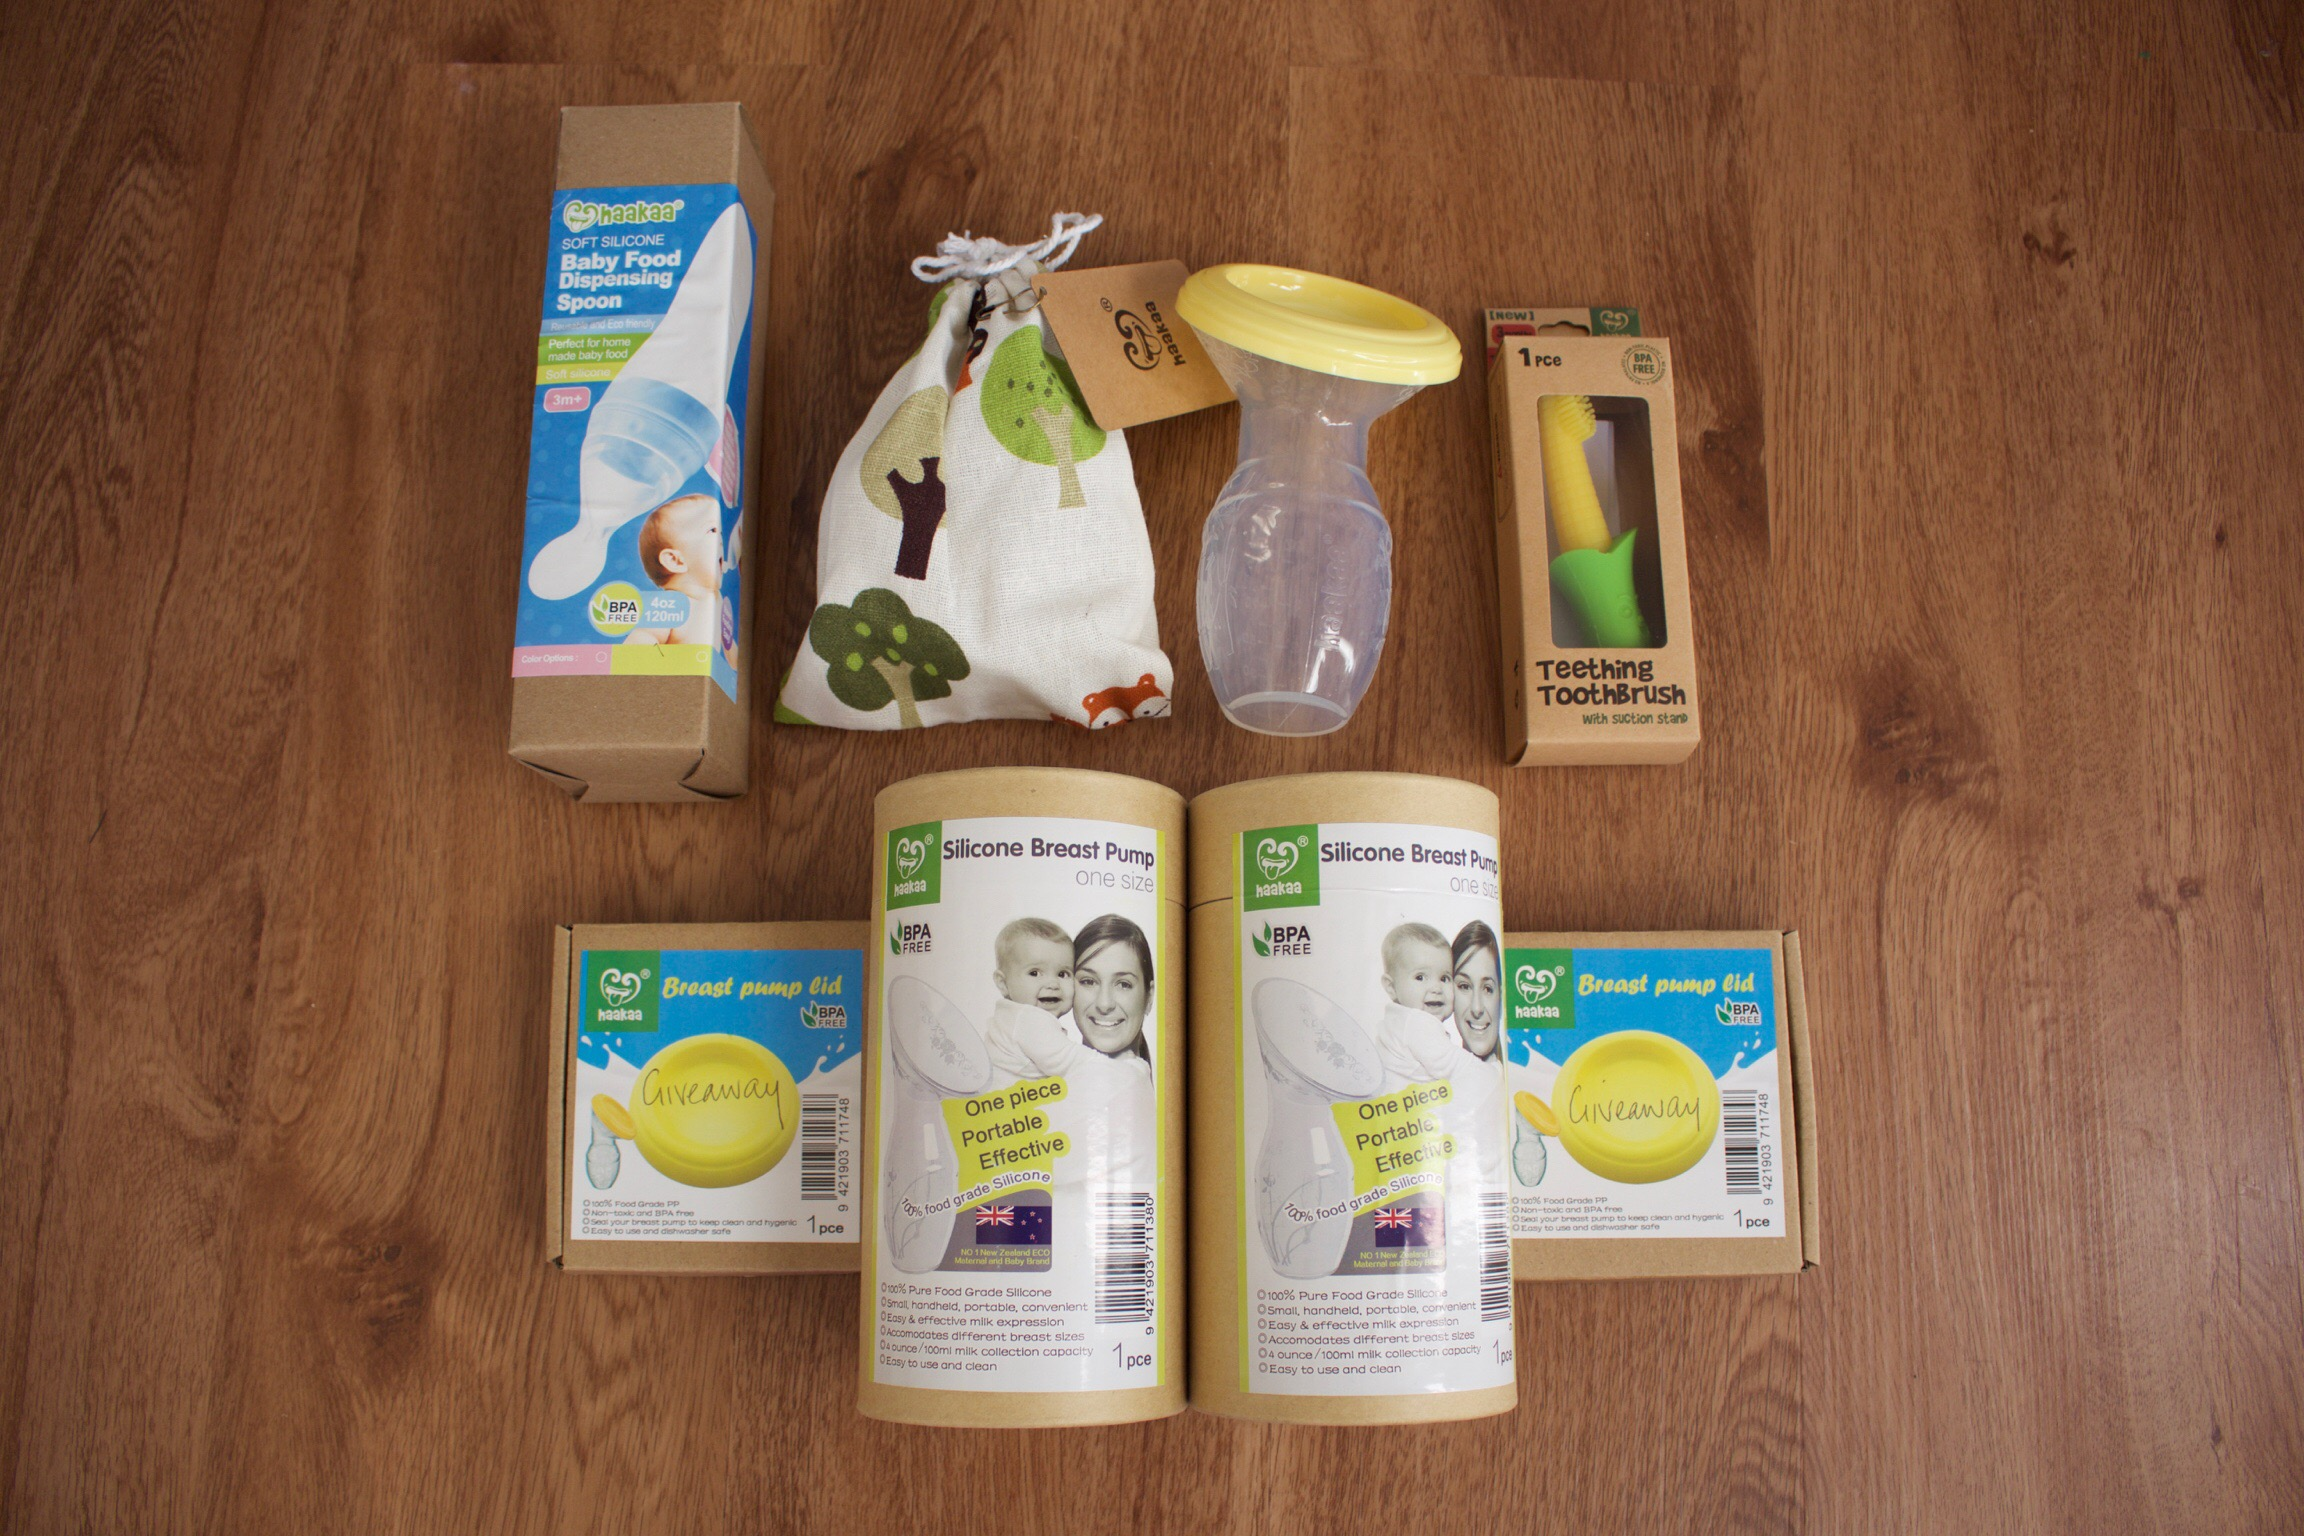 Haakaa Breast Pump review - a selection of products from Haakaa including the Haakaa breast pump, a teething toothbrush, a baby food dispensing spoon and the Haakaa breastpump lid